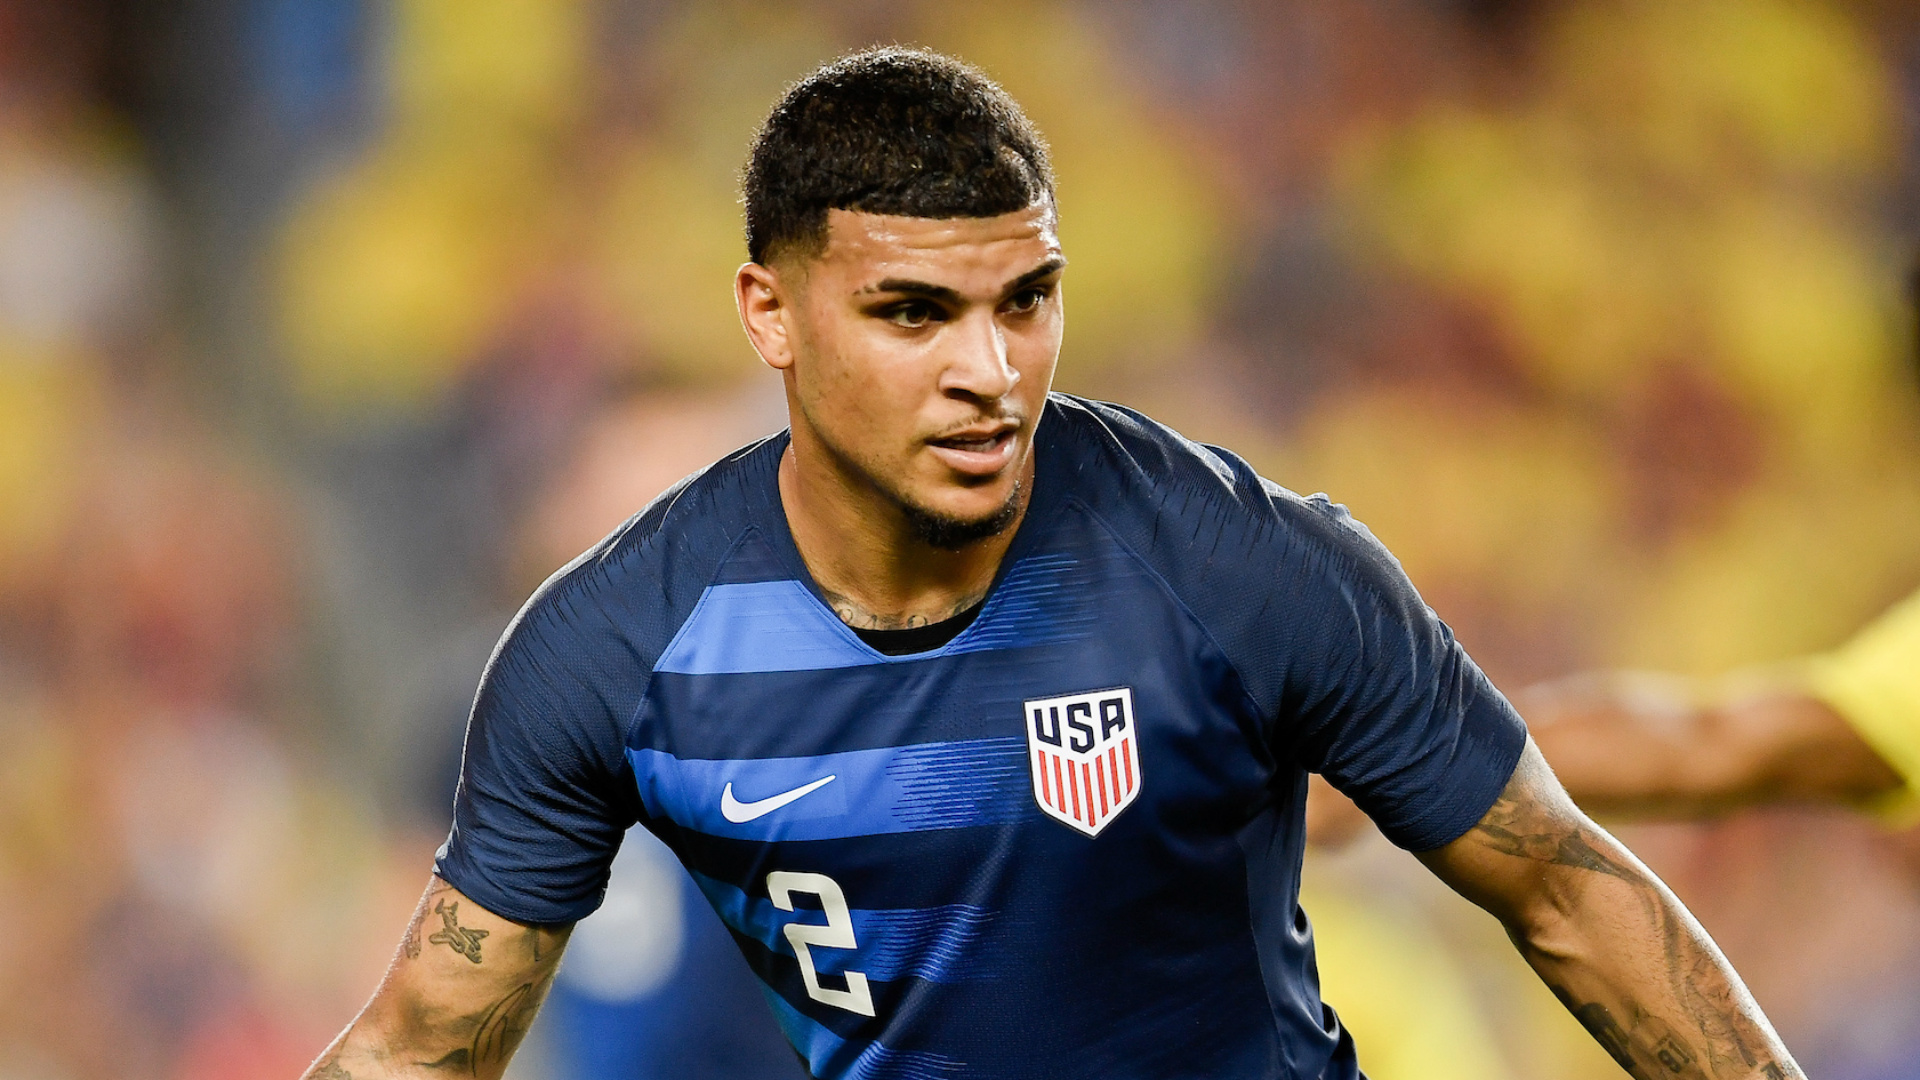 'It's kind of a sh*t show right now' - USMNT star Yedlin hopes protests can change 'embarrassing' United States